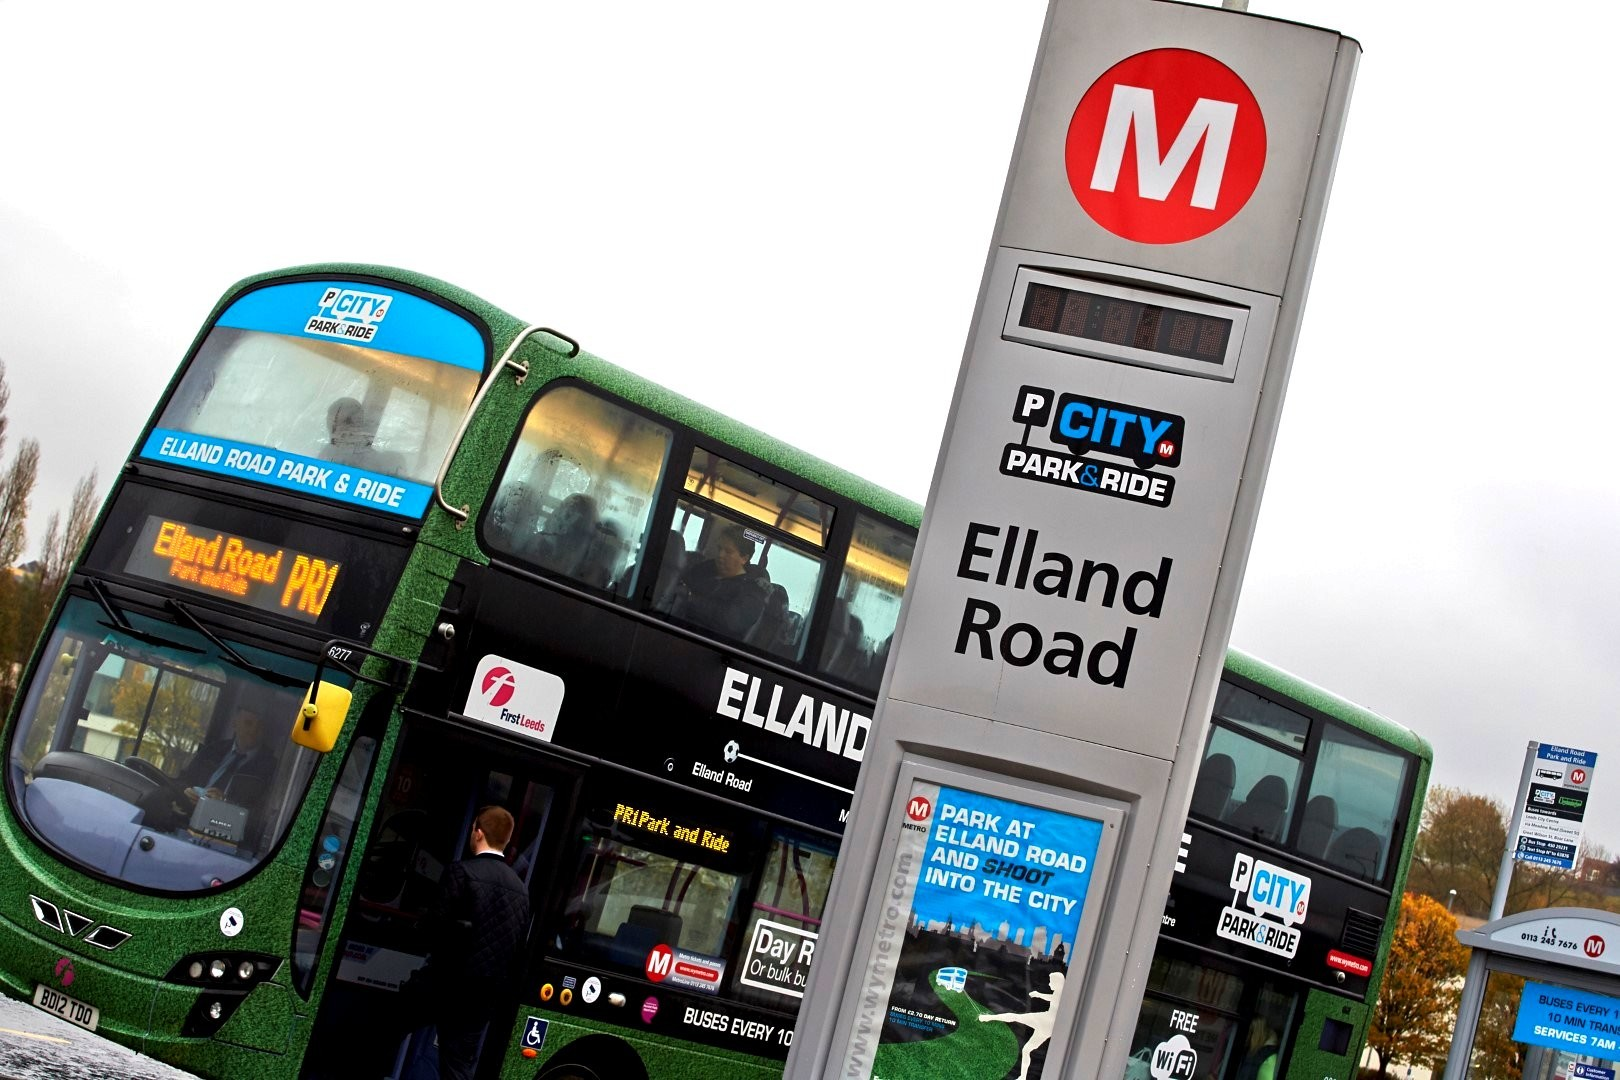 Elland Road Park and Ride 8